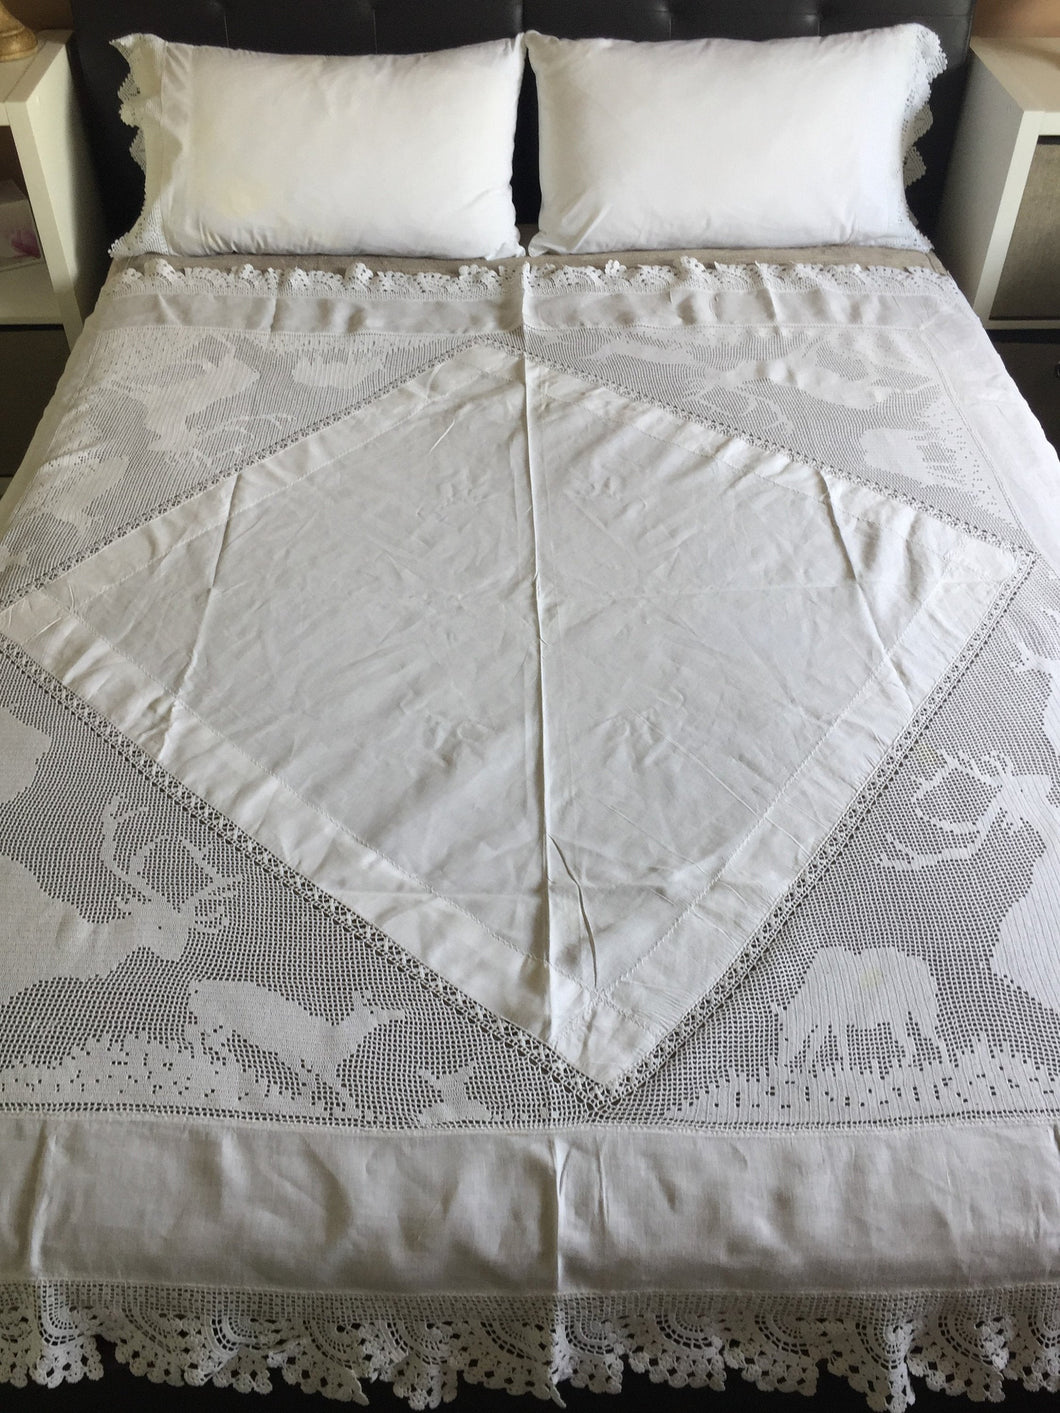 Stag Lace Antique Linen Bed Cover with Filet Crochet Corners and Edging, a Design from